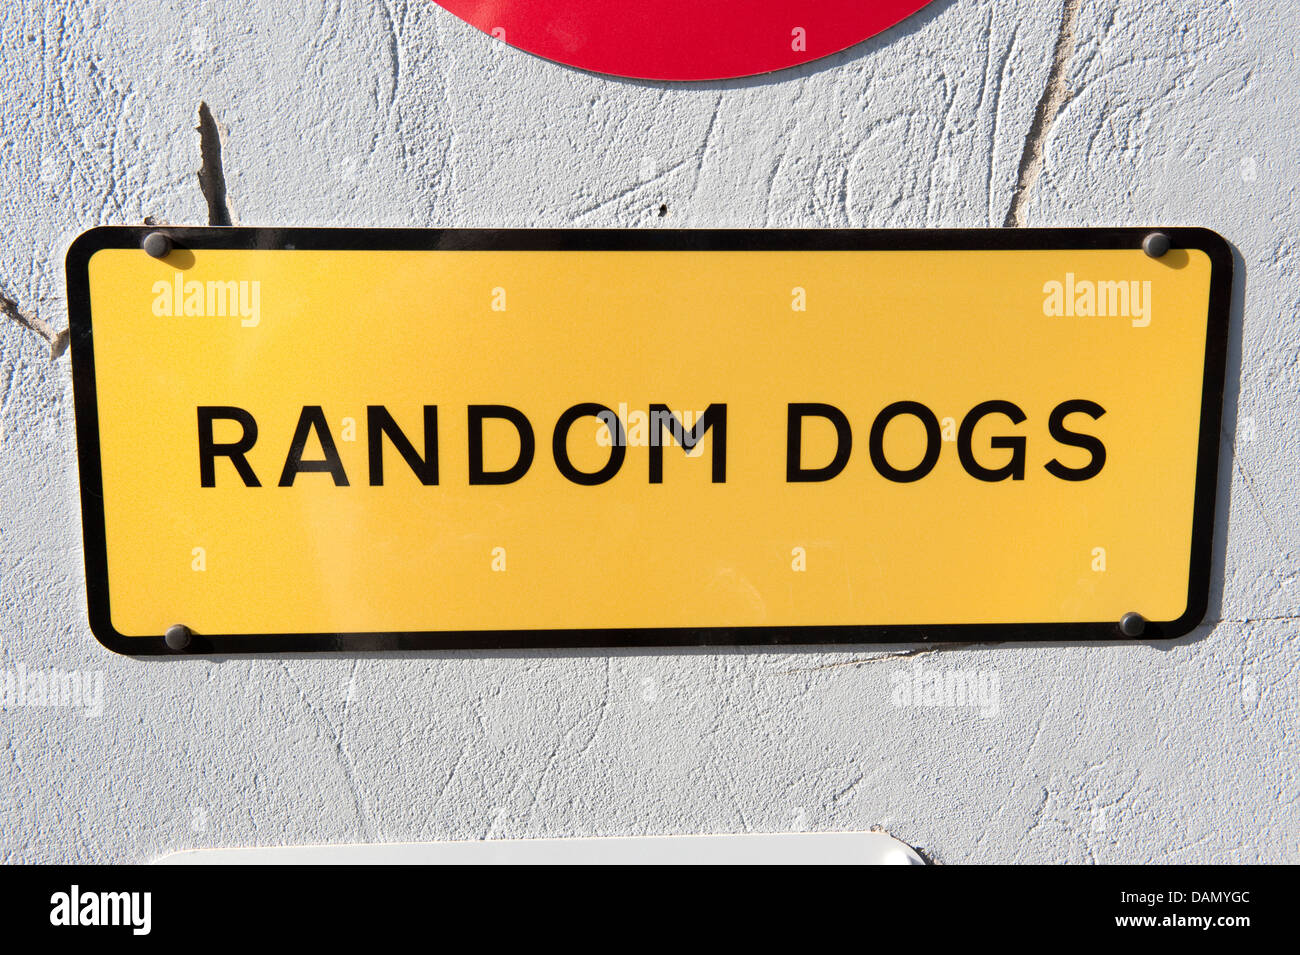 Sign Random Dogs Yellow Black Oblong Warning - Stock Image